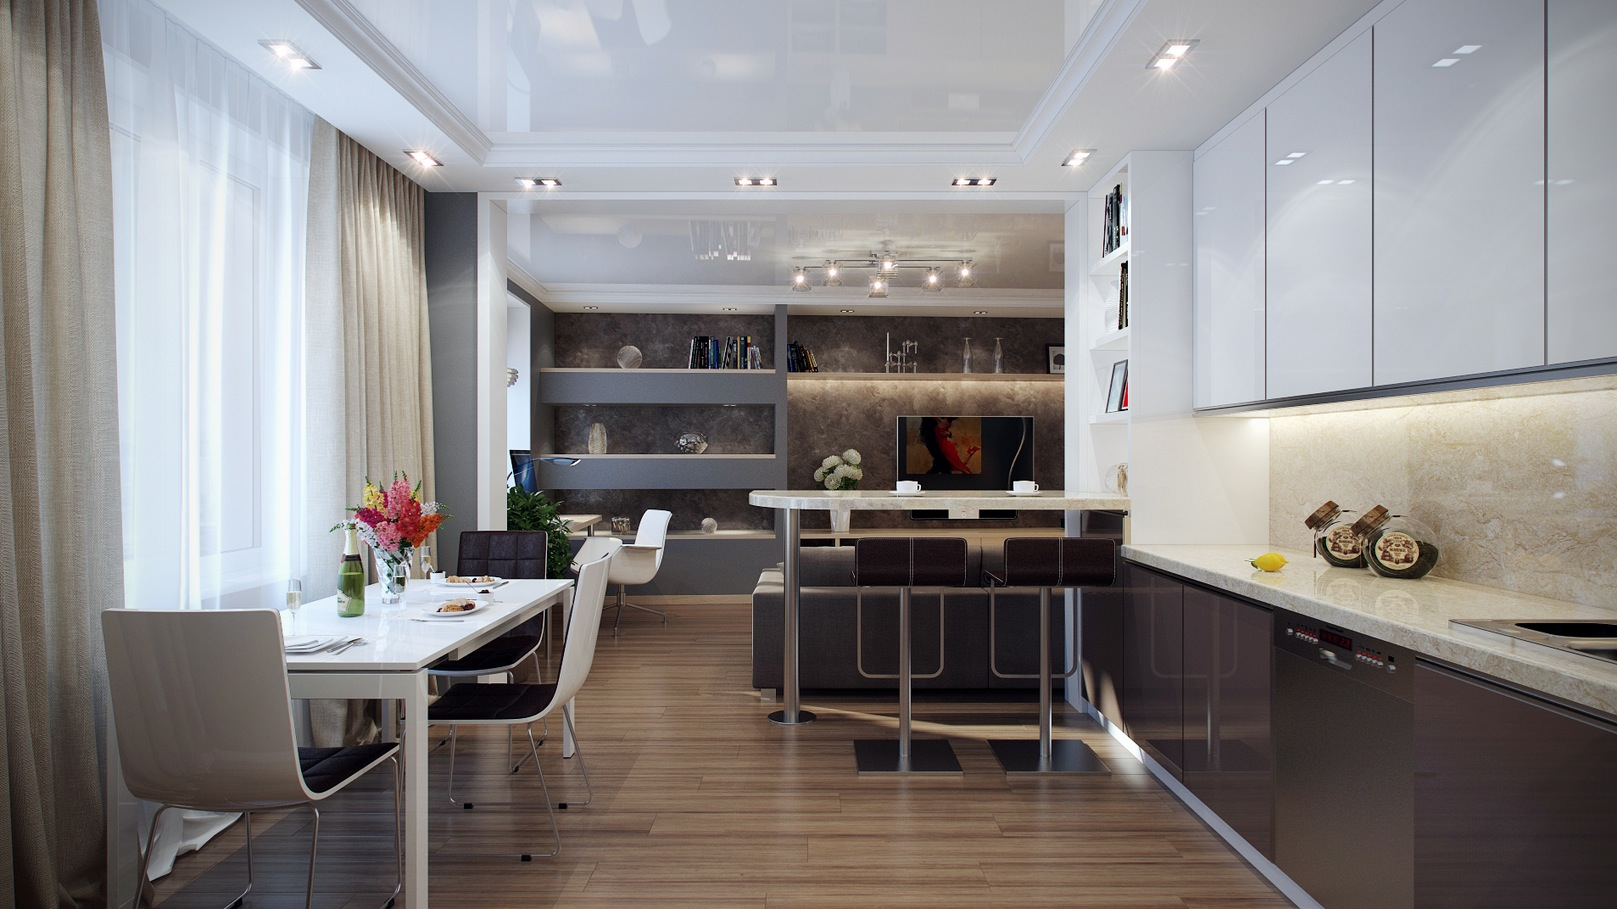 Modern Dining Suite - Striking home visualizations by pavel vetrov